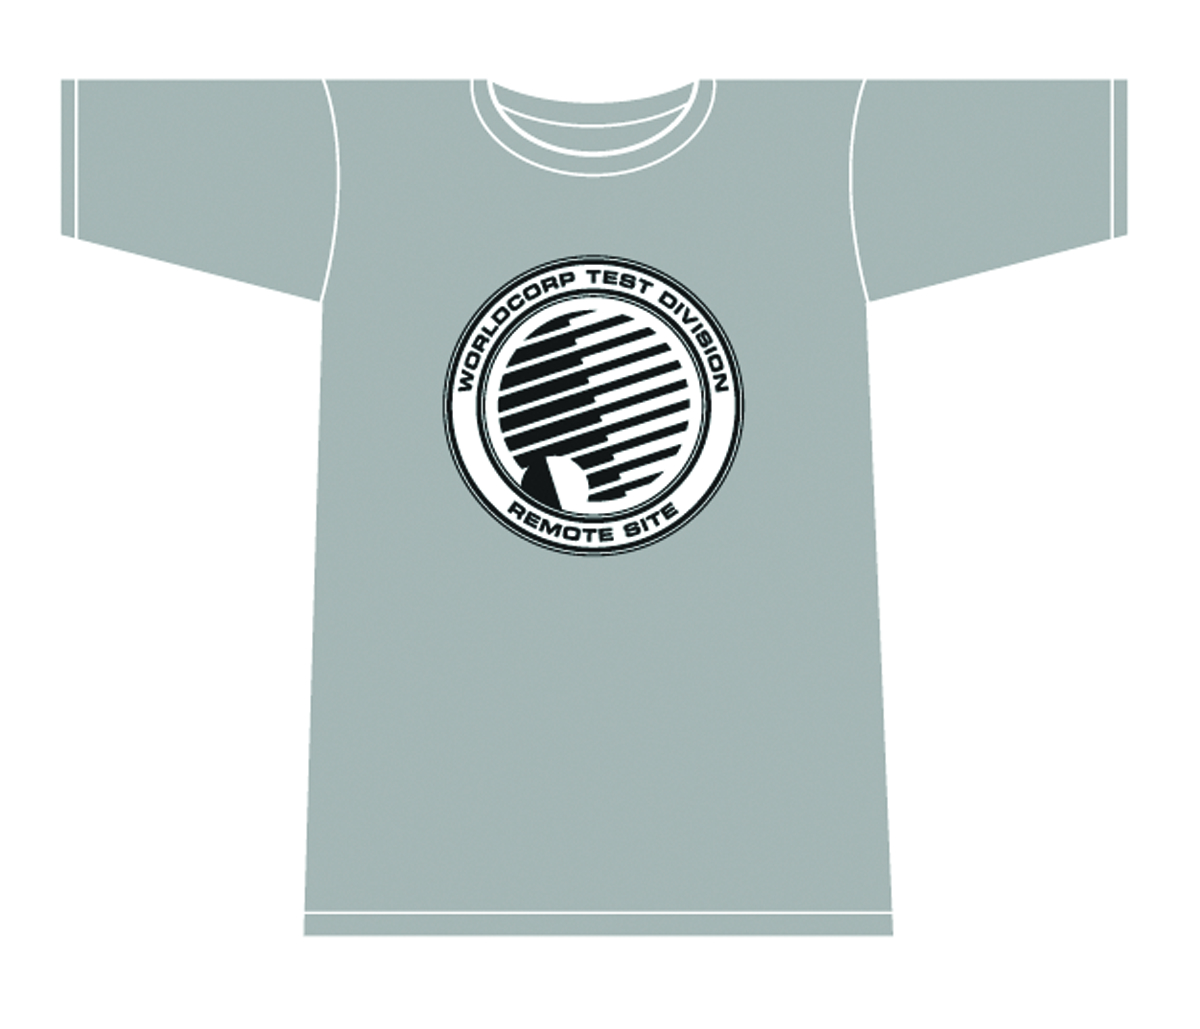 NOWHERE MEN WORLD CORP TEST DIVISION T/S GREY WOMENS LG